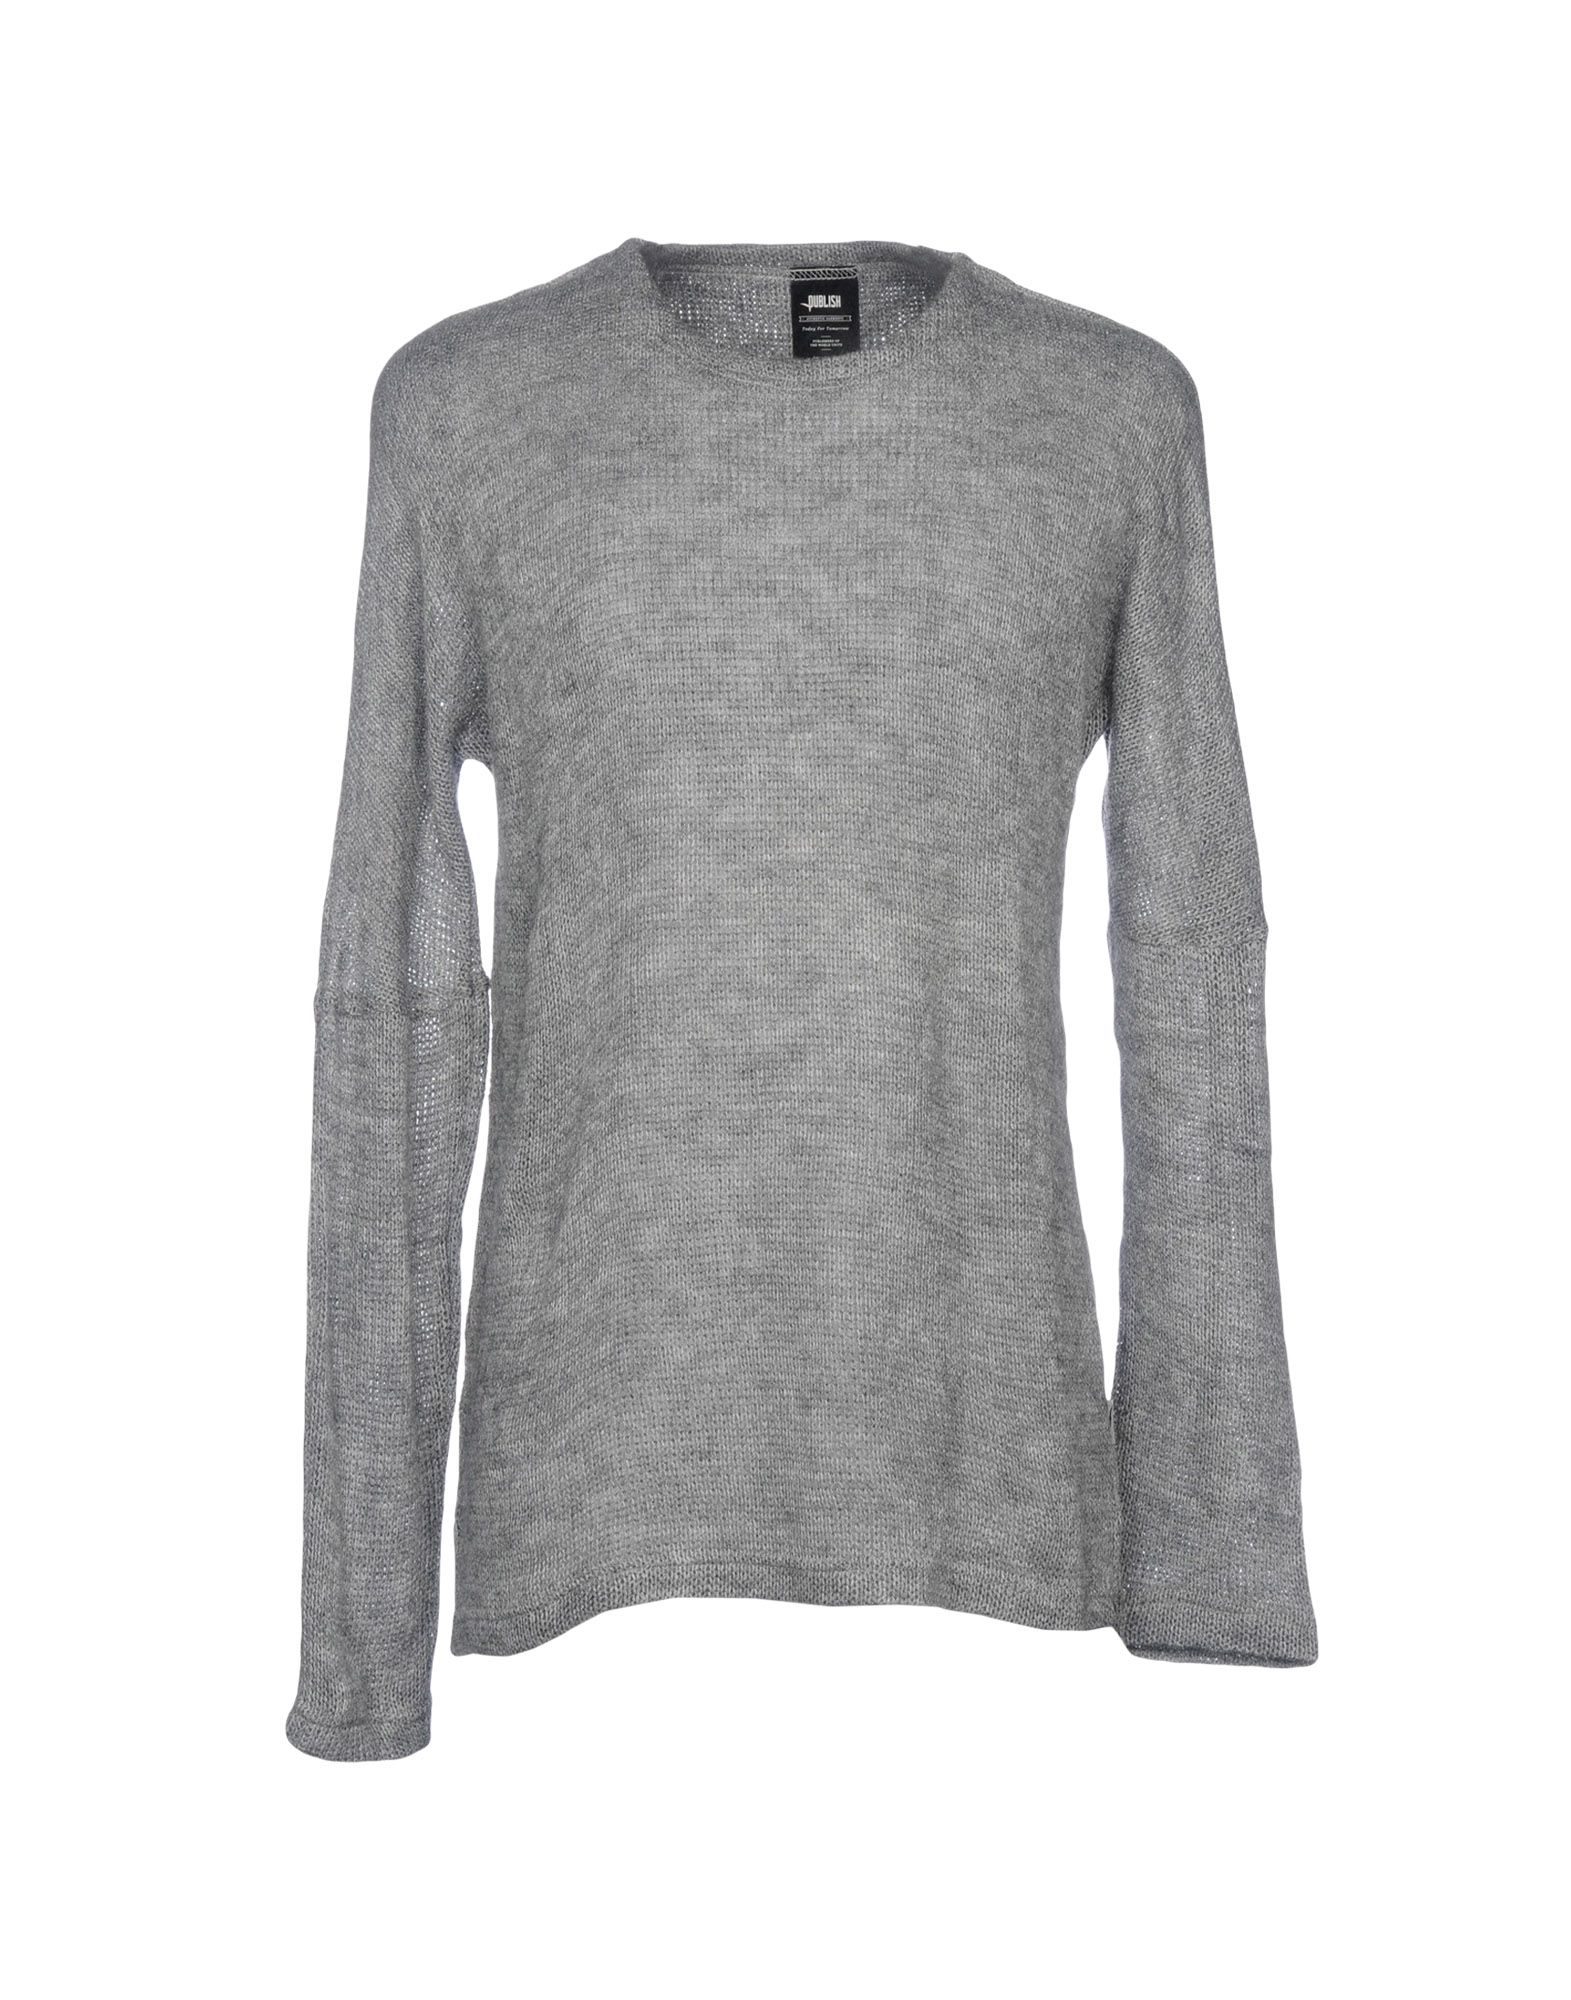 PUBLISH Sweater in Grey